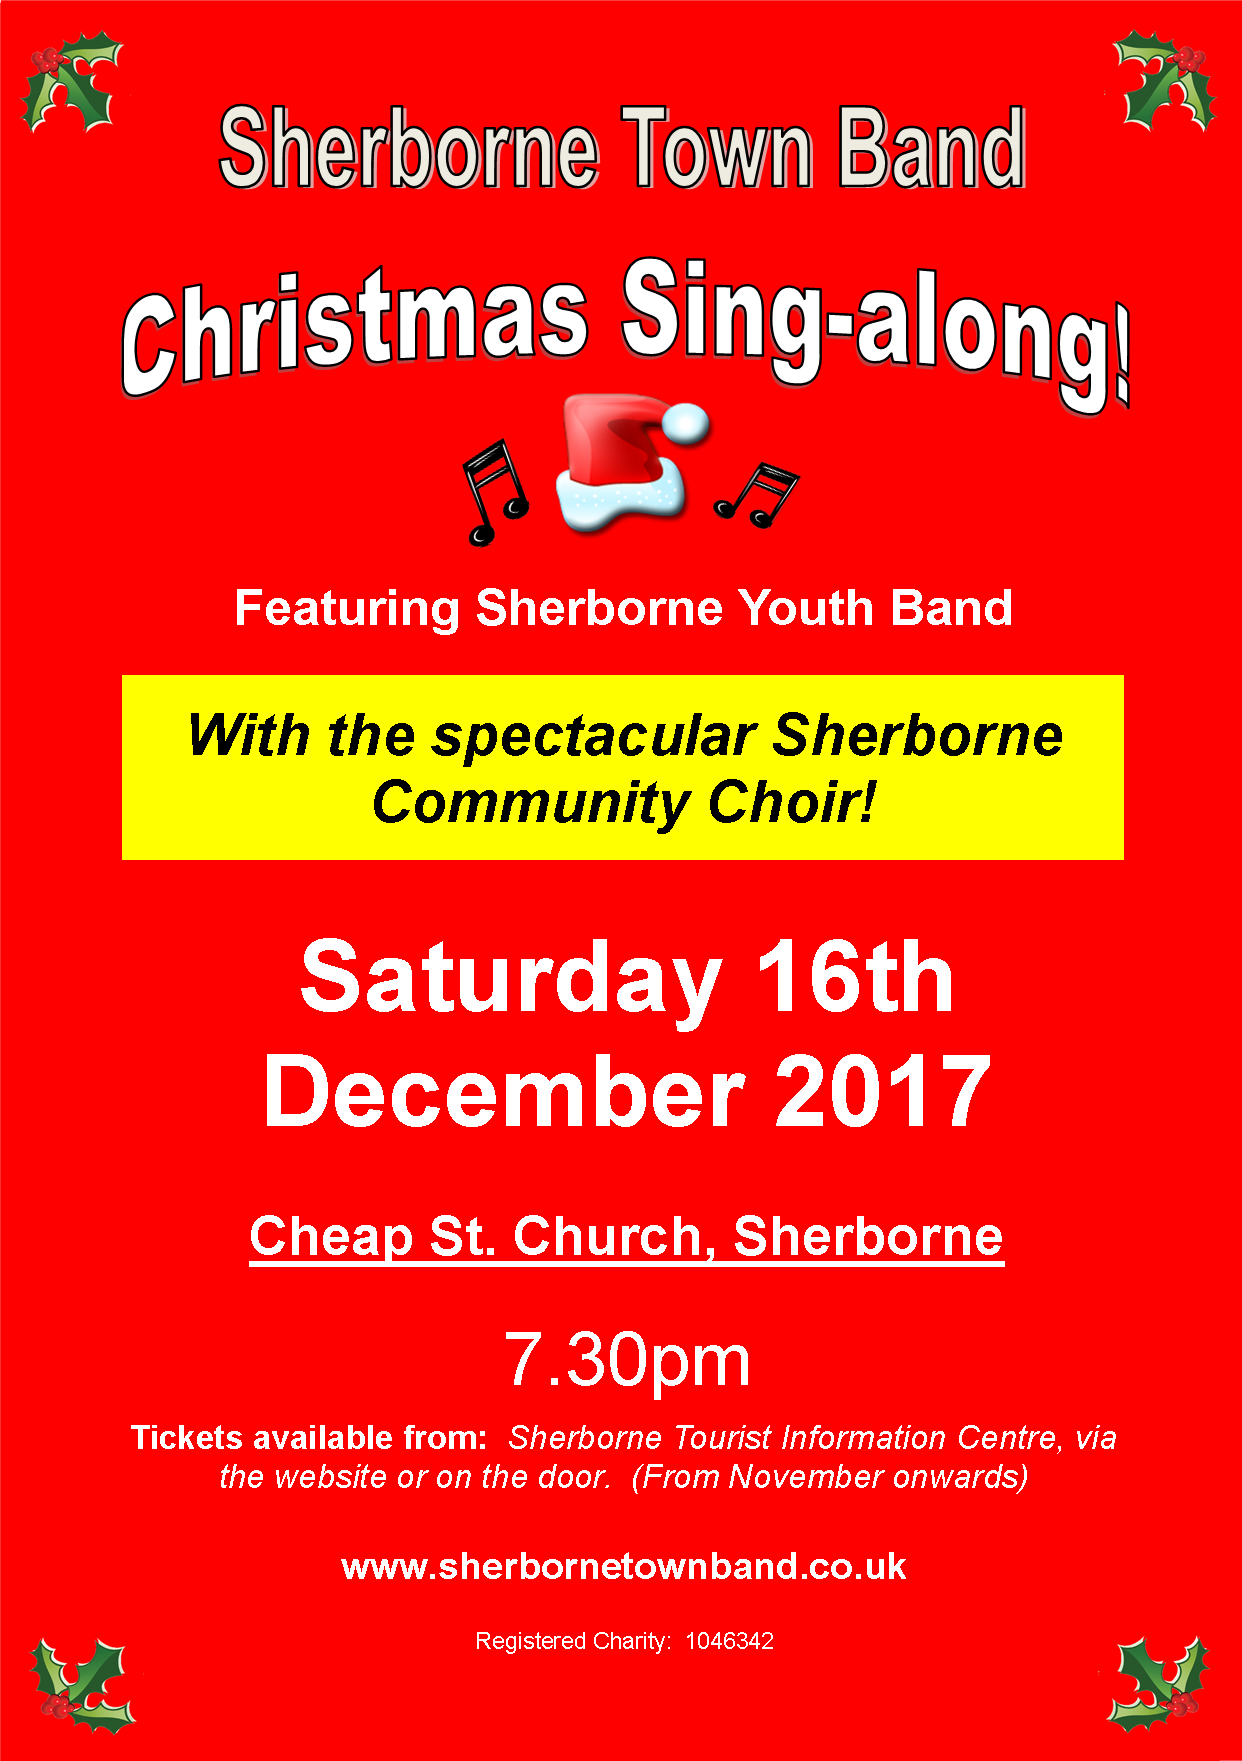 Sherborne Town Band - Christmas Sing-a-long!